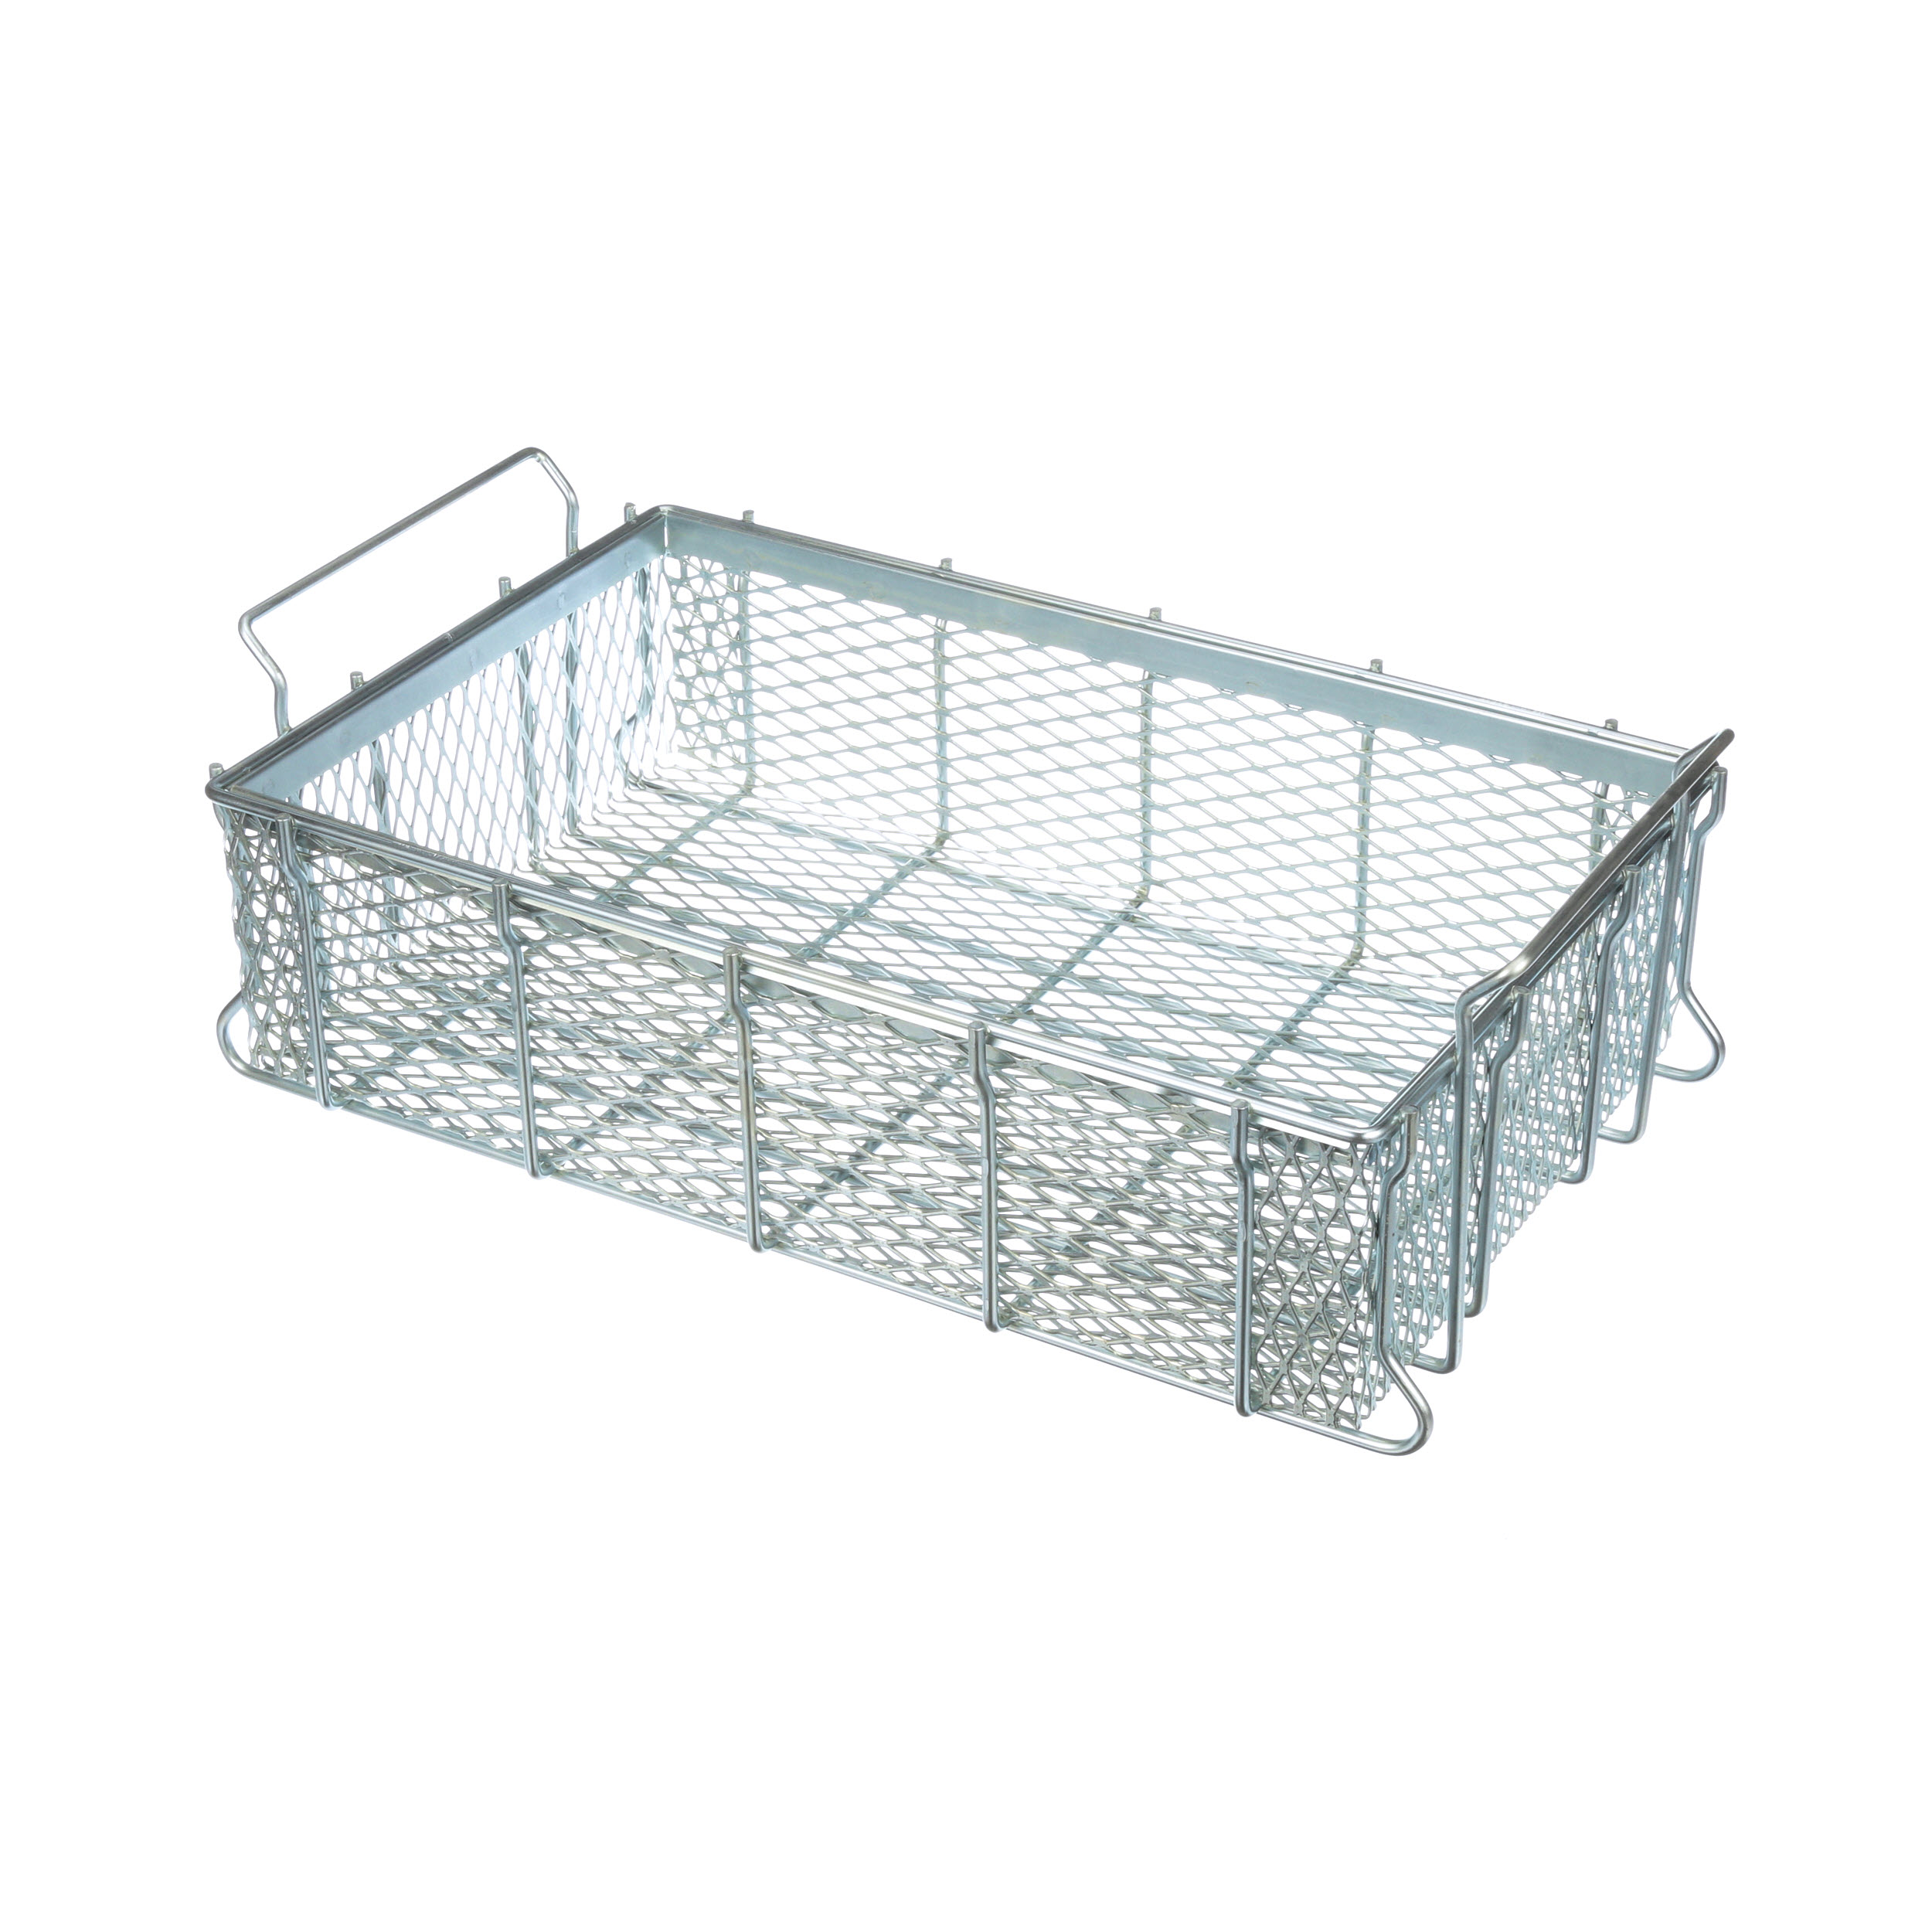 Top Medical Applications for Expanded Metal Baskets